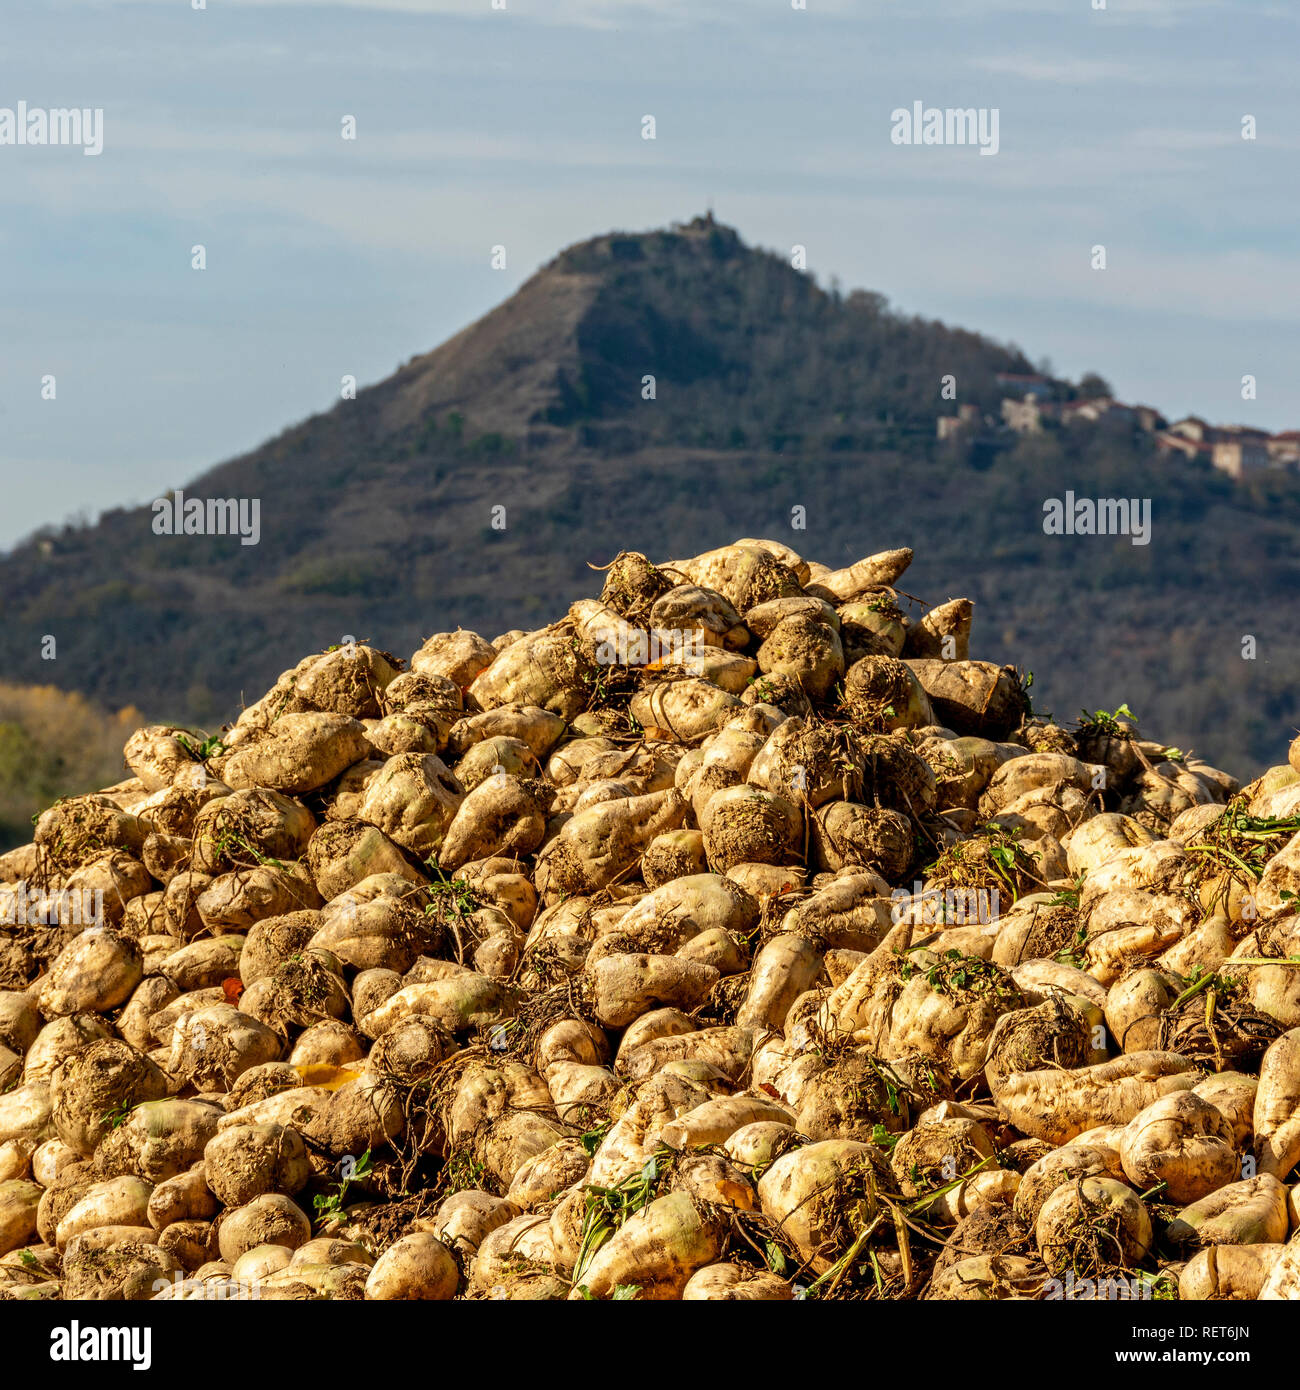 Pile of sugar beet newly harvested in a field, Auvergne, France Stock Photo